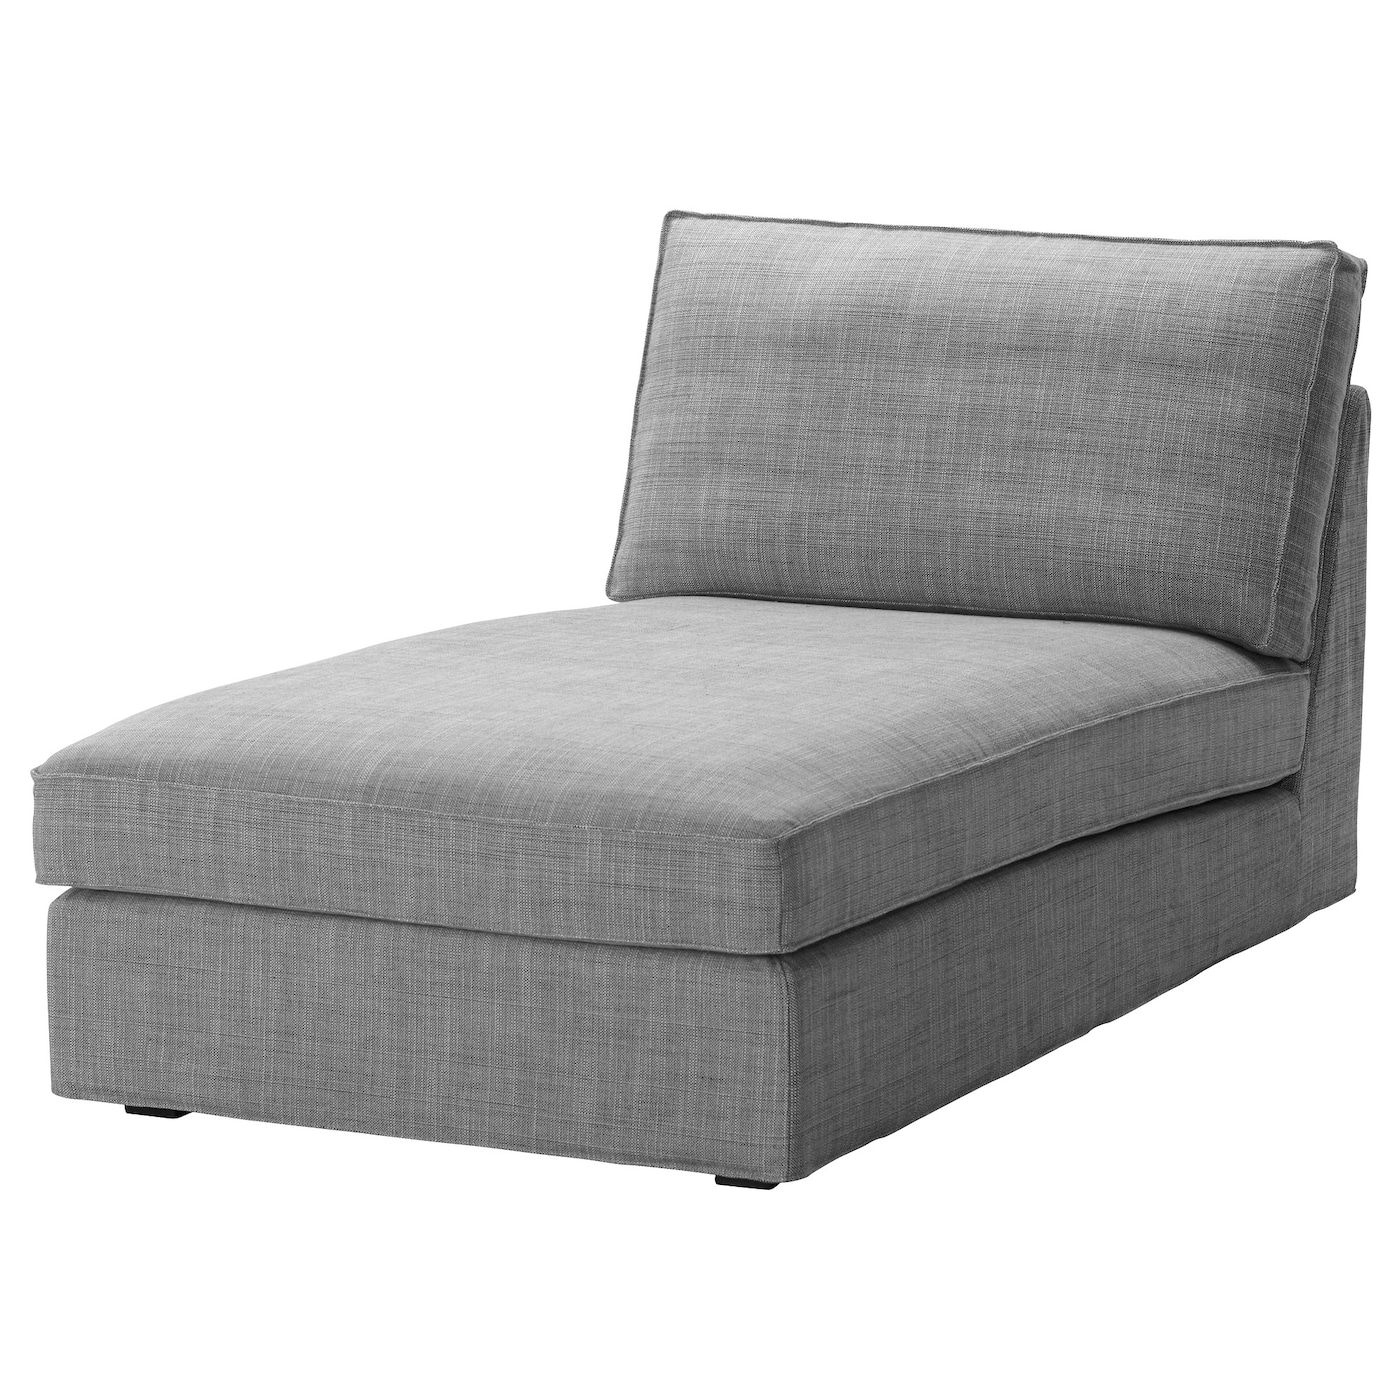 Kivik chaise longue isunda grey ikea for Chaise longue en rotin ancienne